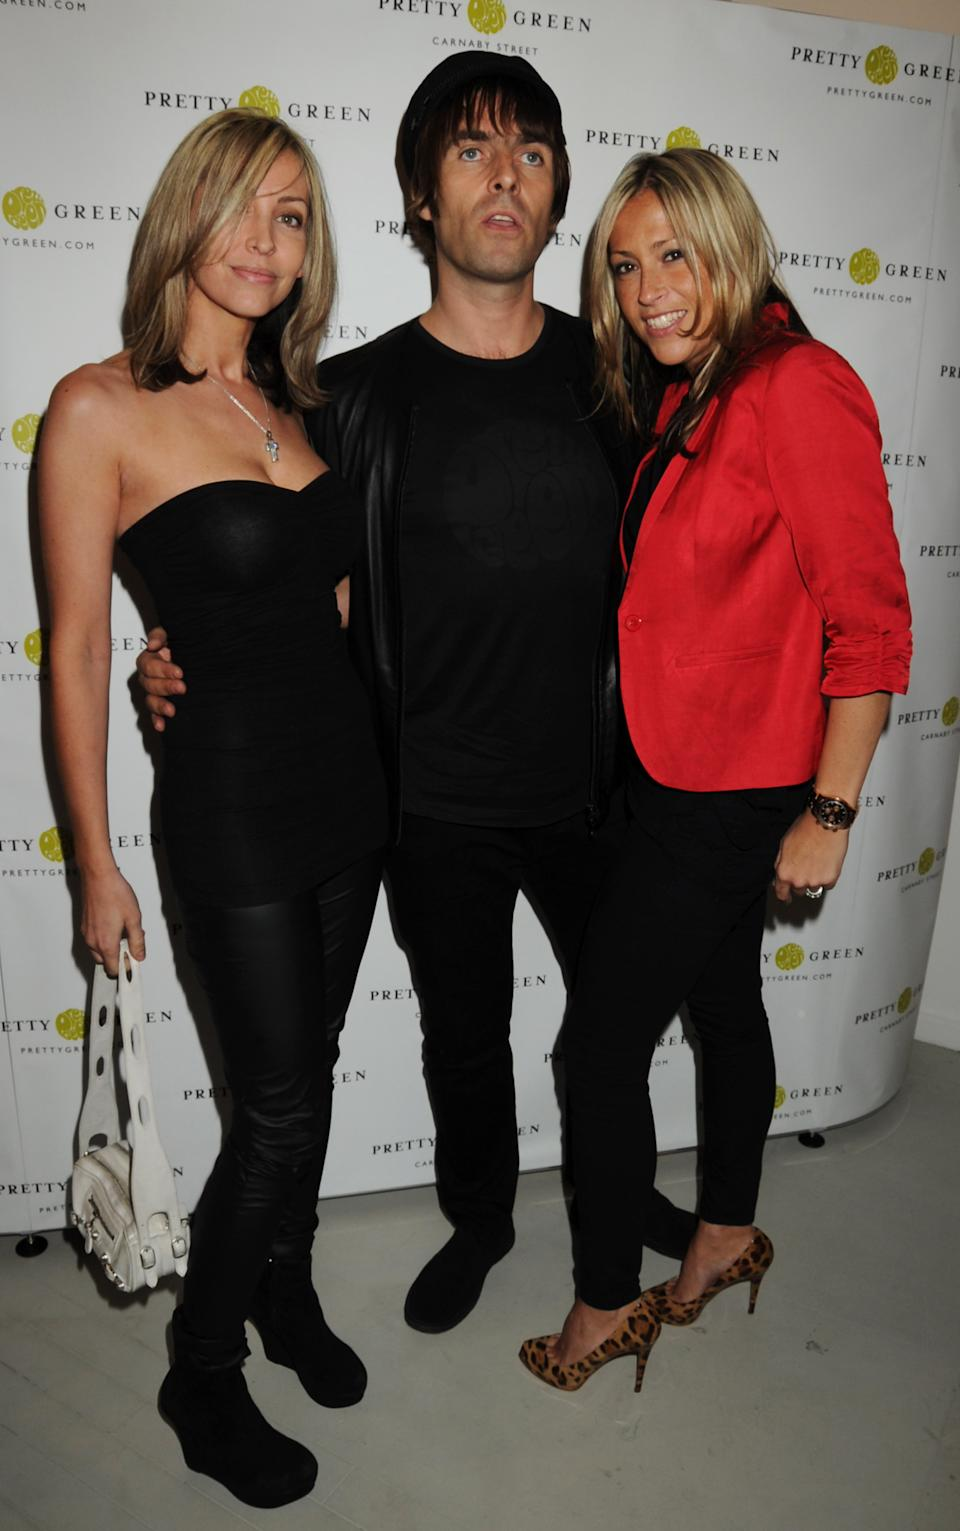 LONDON, ENGLAND - JULY 29:  (EMBARGOED FOR PUBLICATION IN UK TABLOID NEWSPAPERS UNTIL 48 HOURS AFTER CREATE DATE AND TIME. MANDATORY CREDIT PHOTO BY DAVE M. BENETT/GETTY IMAGES REQUIRED)  Natalie Appleton, Liam Gallagher and Nicole Appleton attend the launch party of Liam Gallagher's new store Pretty Green on July 29, 2010 in London, England.  (Photo by Dave M. Benett/Getty Images)